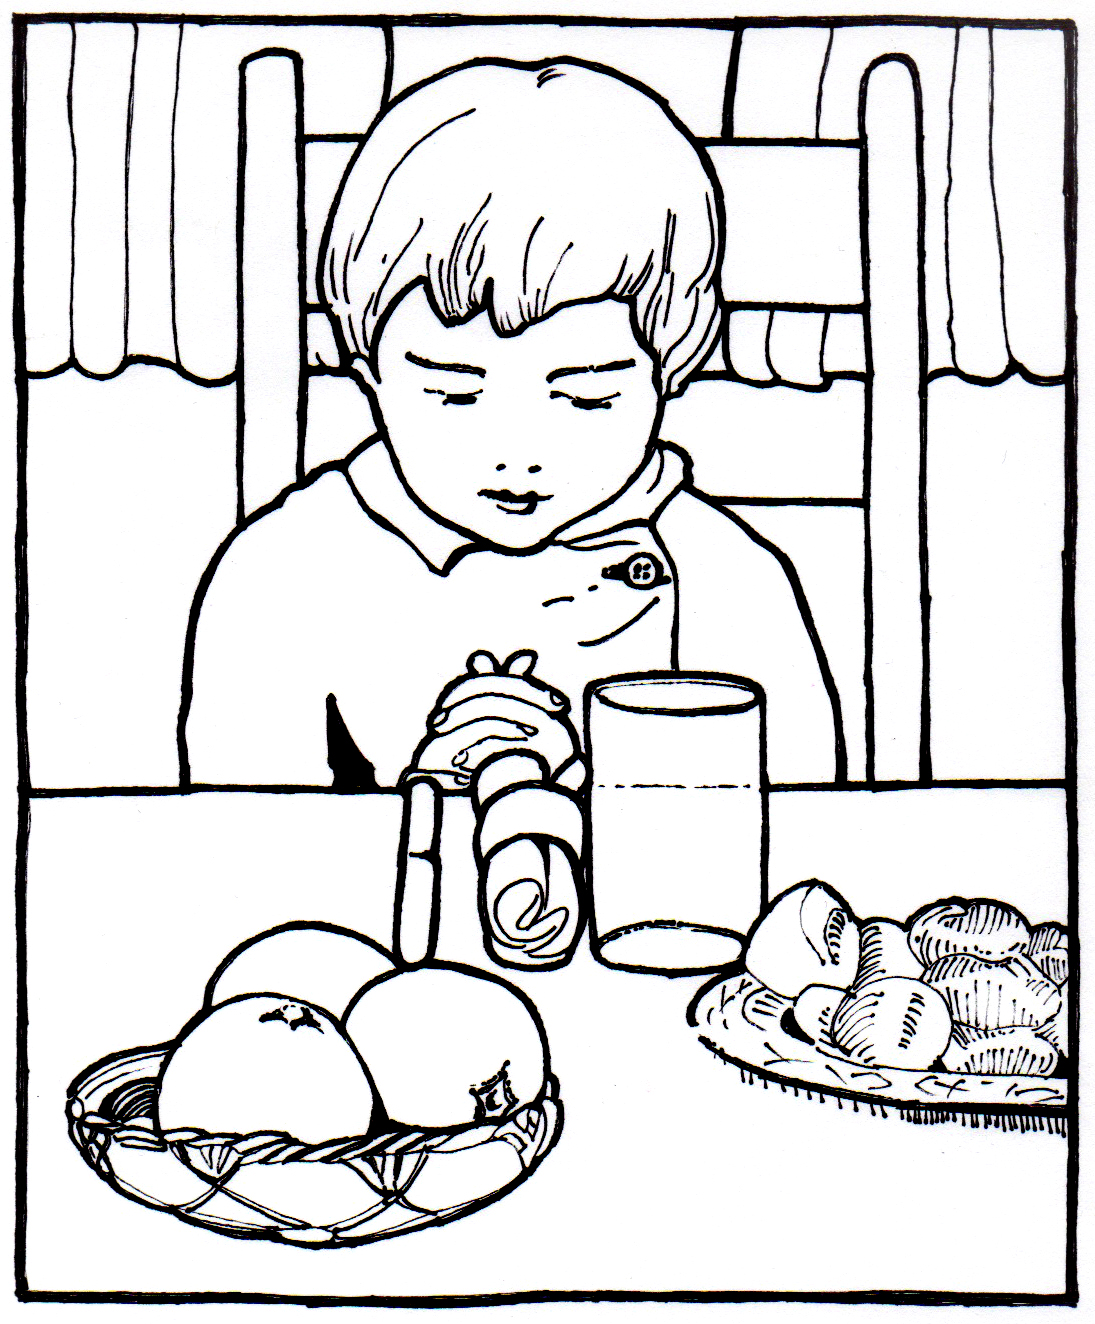 coloring pages about prayer - pray before eating coloring pages to print